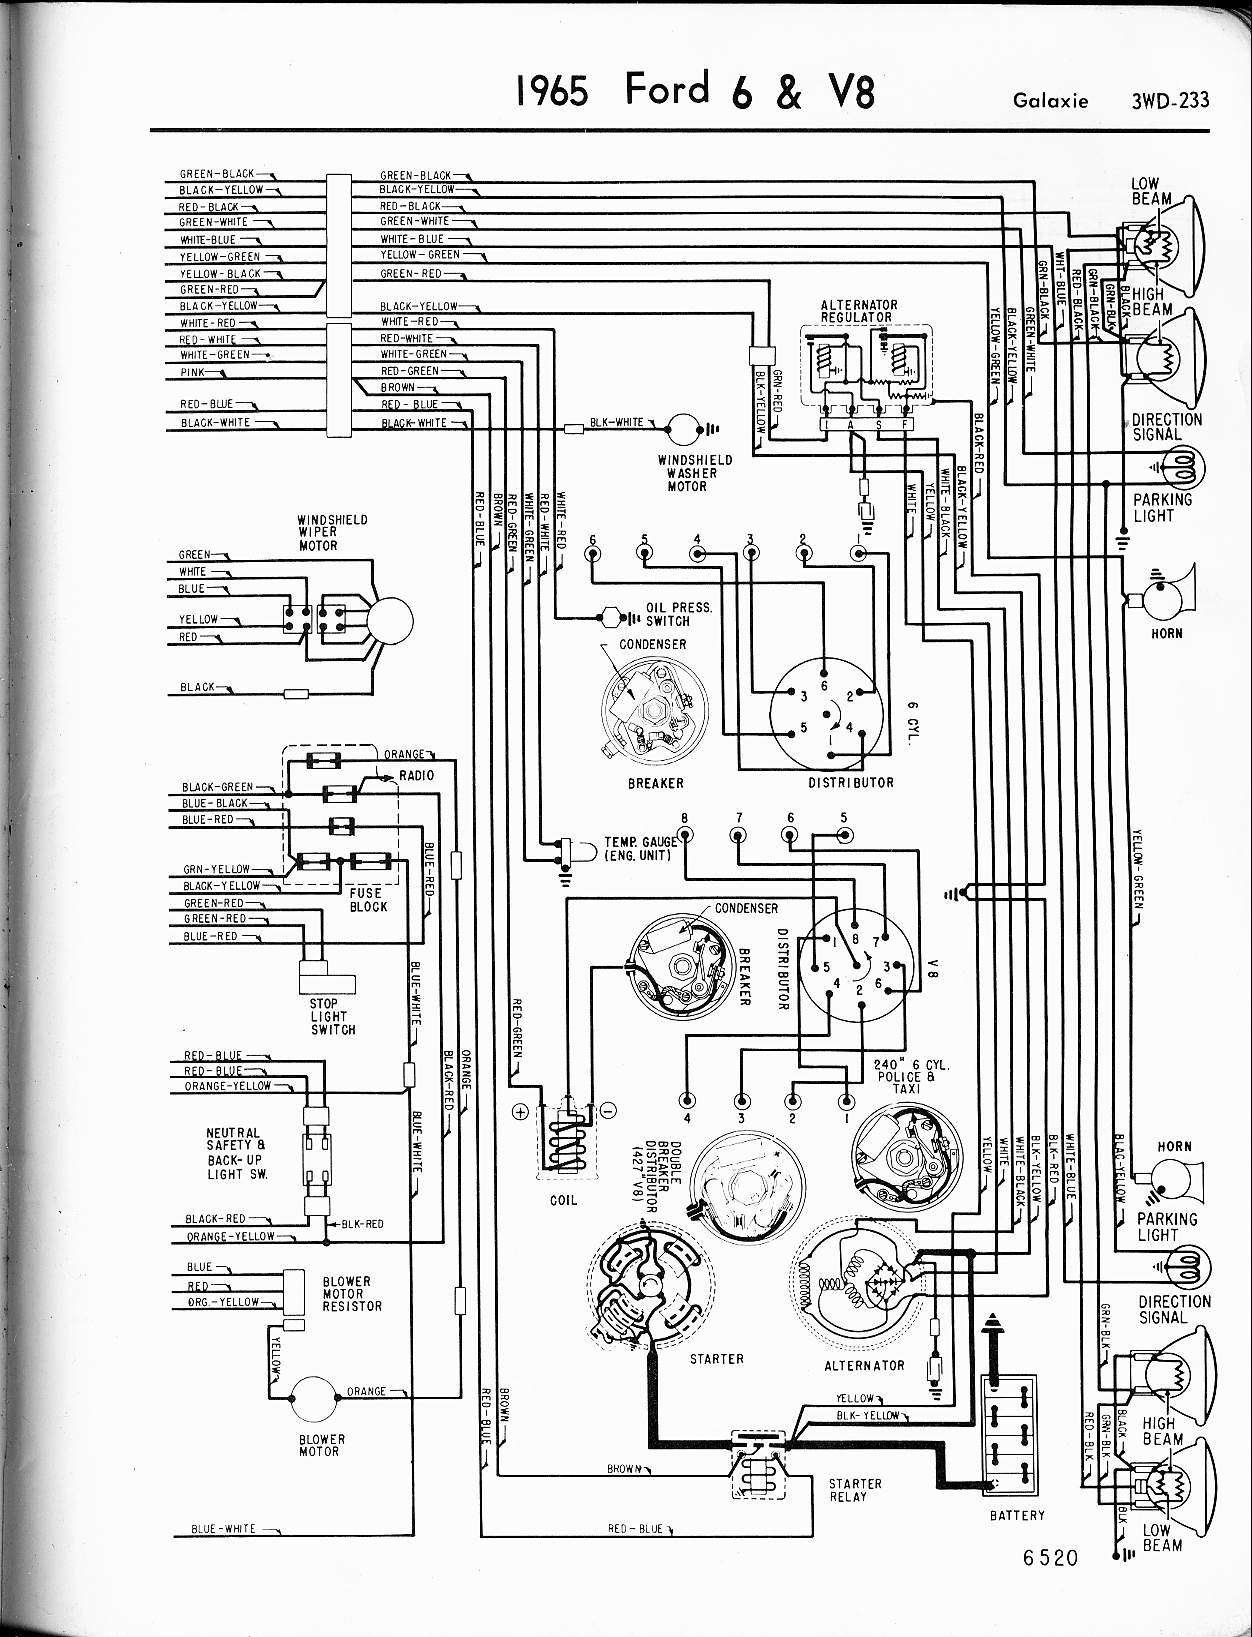 MWire5765 233 57 65 ford wiring diagrams 1990 ford truck wiring diagram at gsmx.co